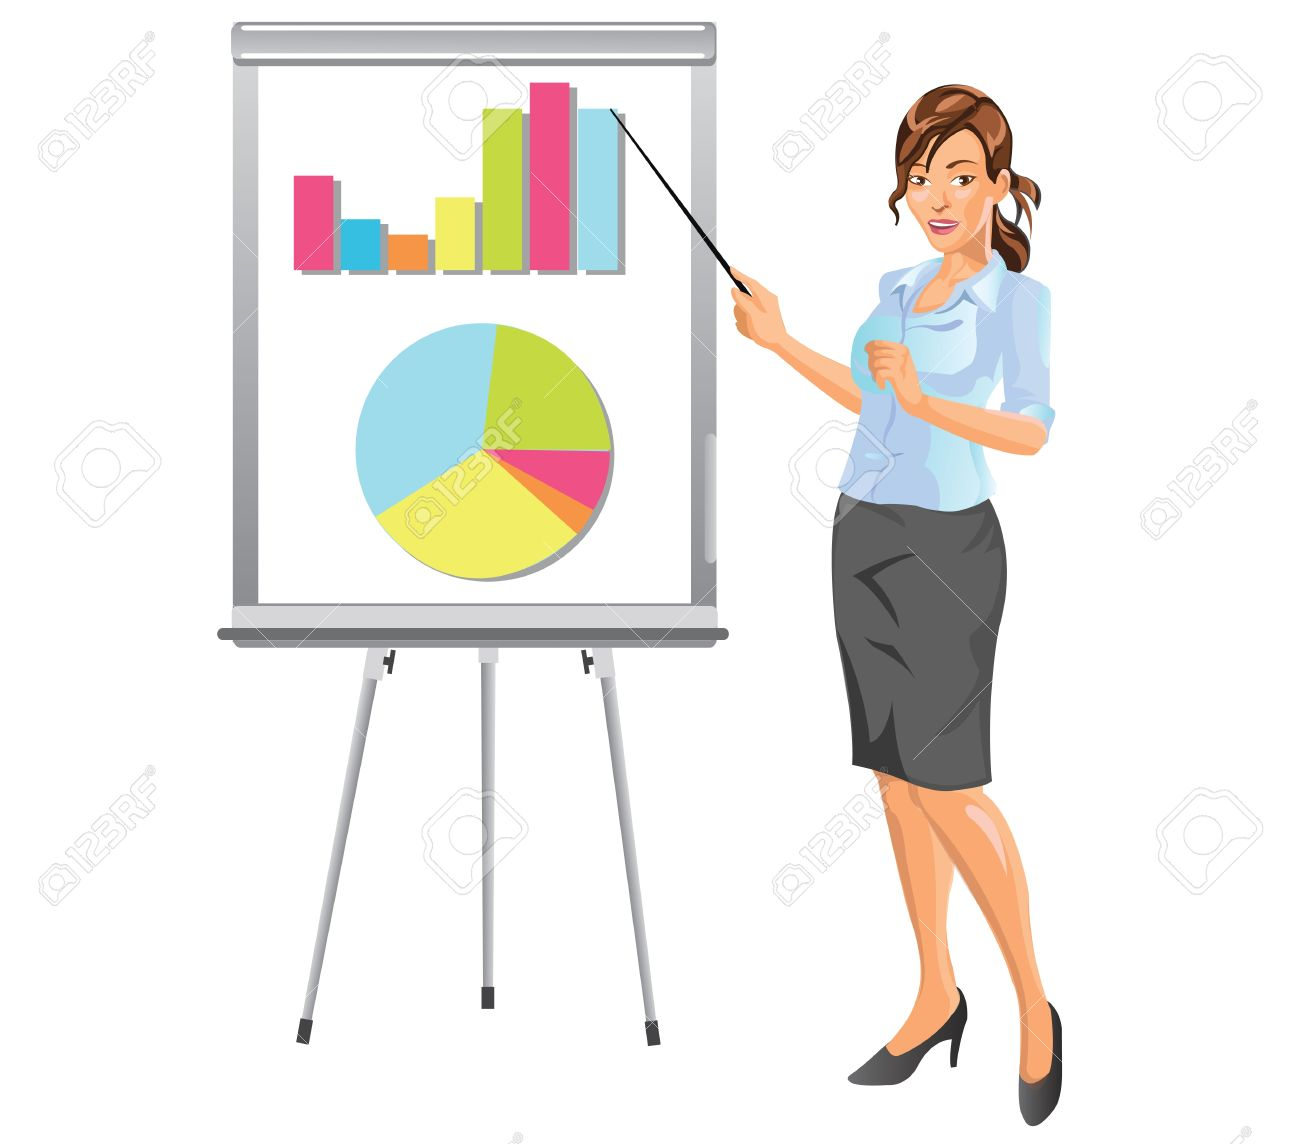 Businesswoman Giving Presentation in Business Meeting.